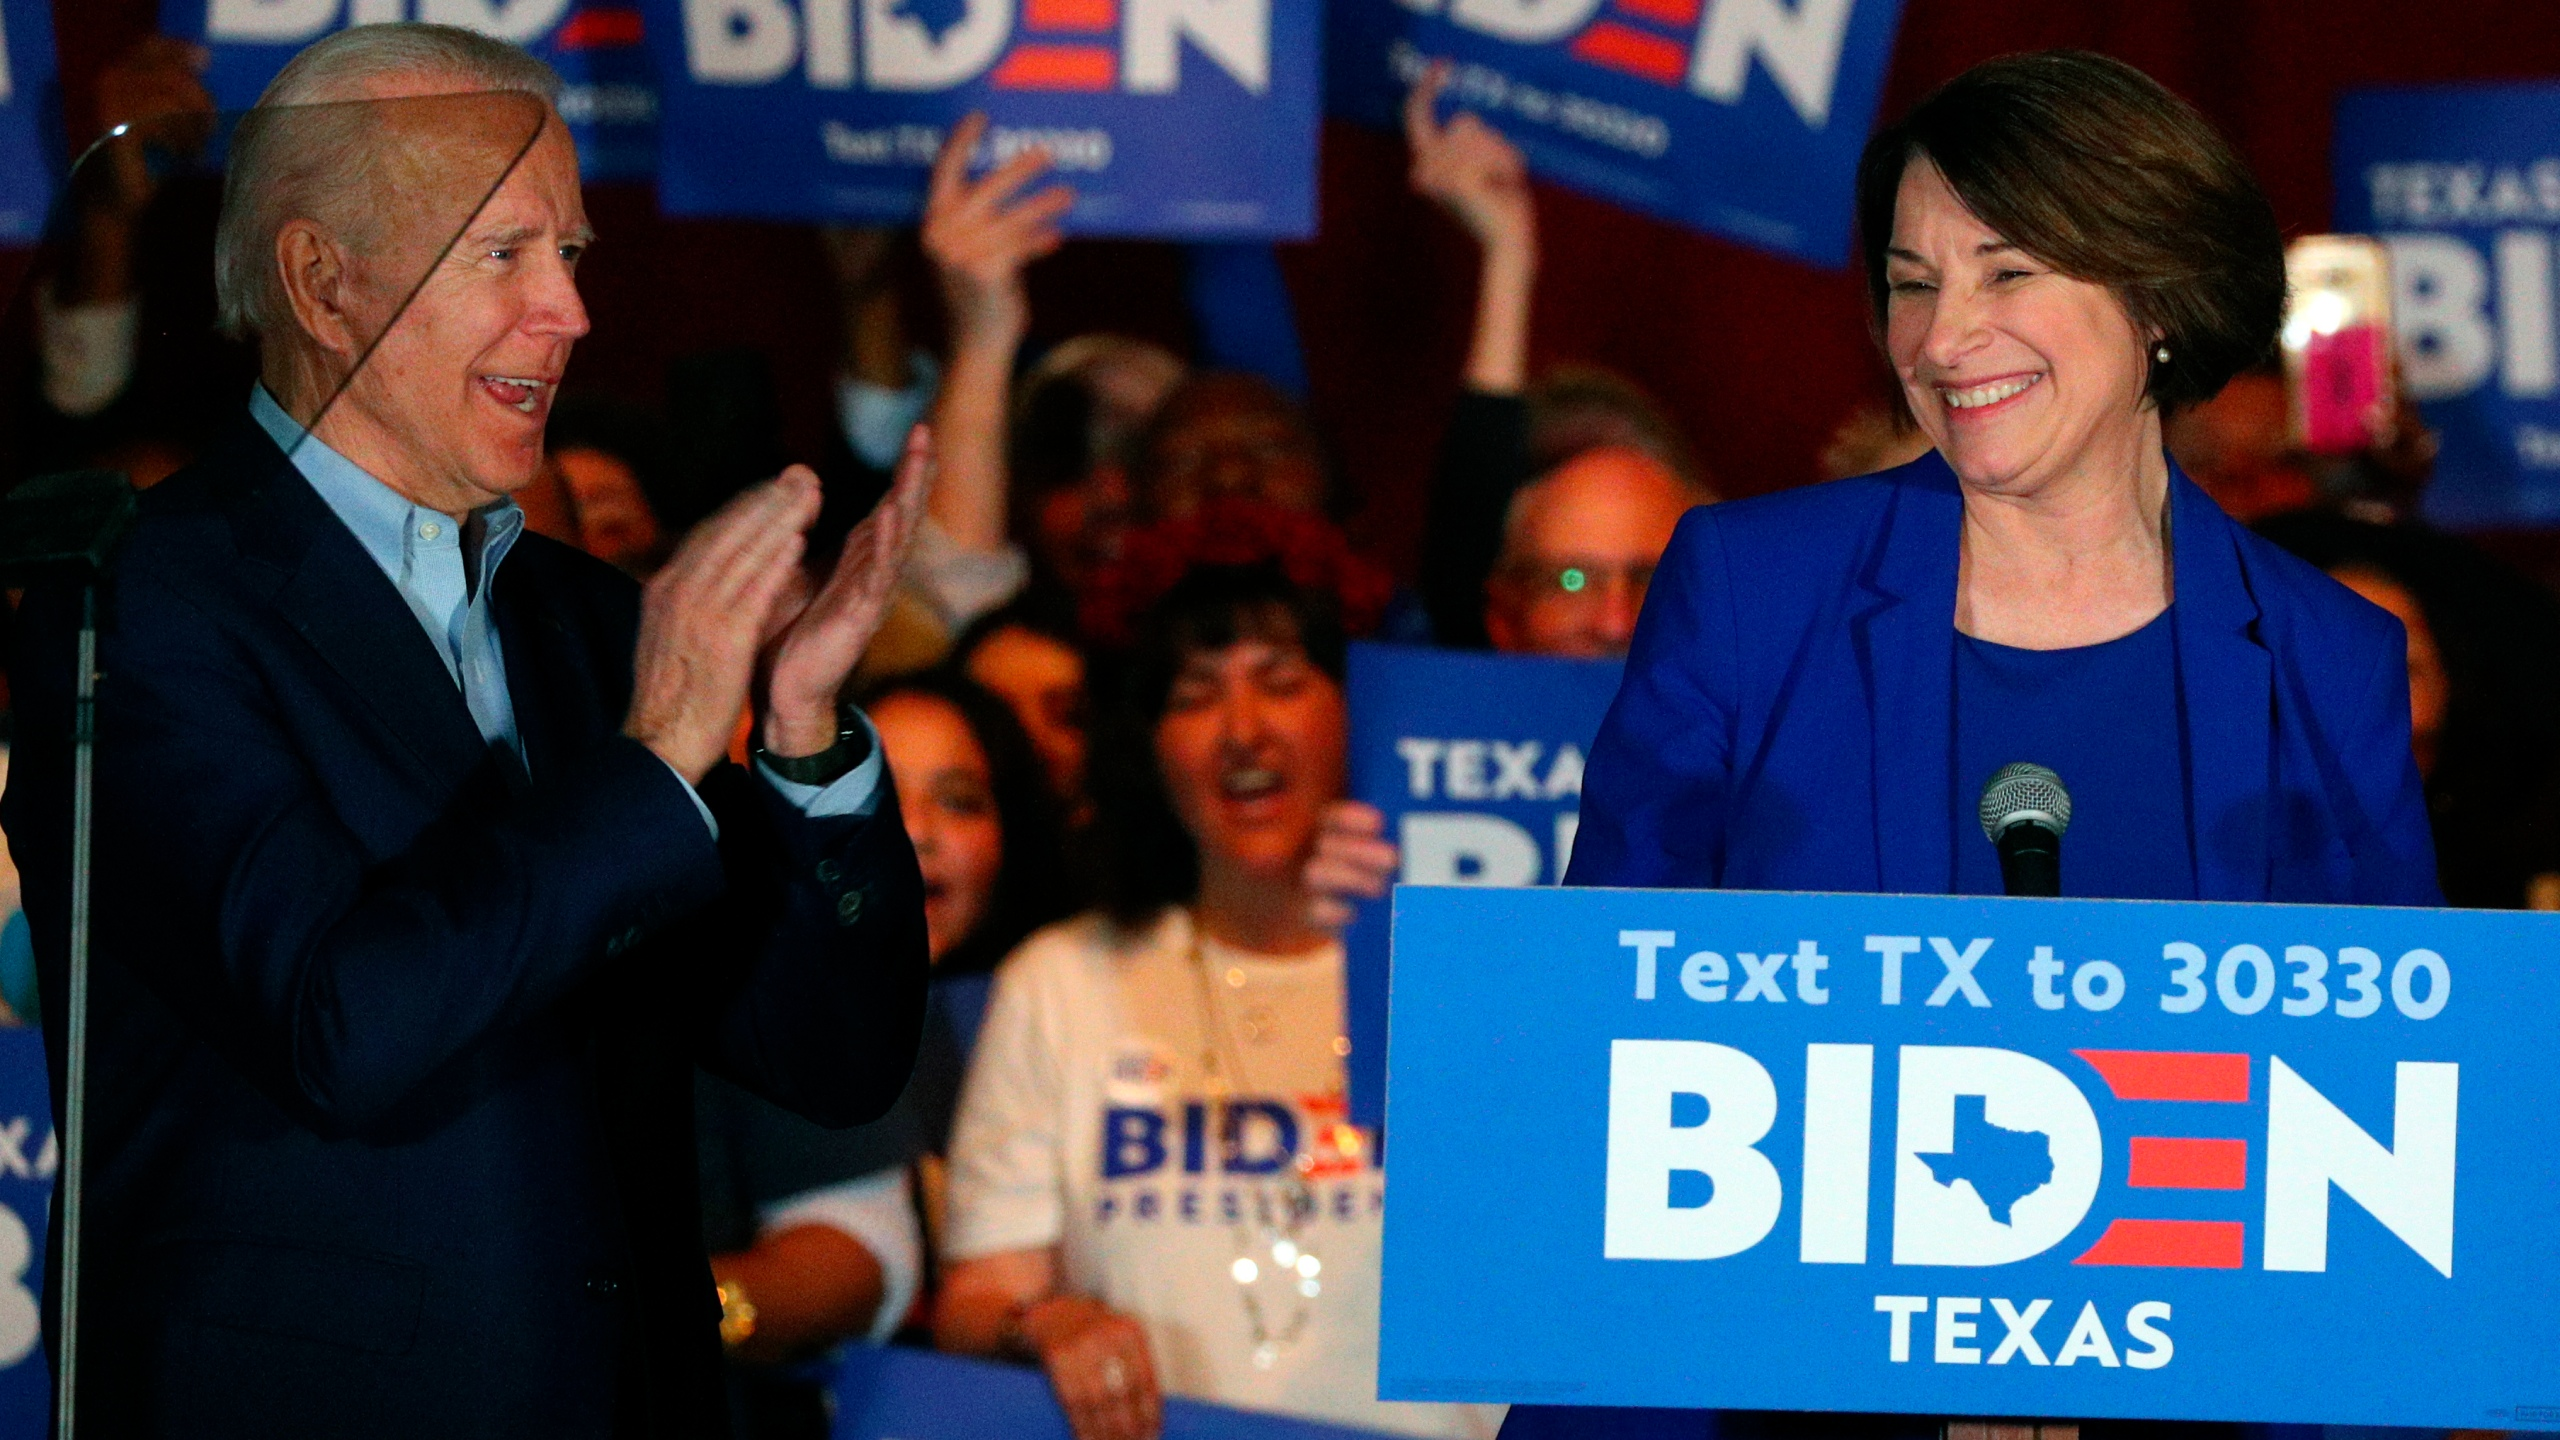 Joe Biden, Amy Klobuchar